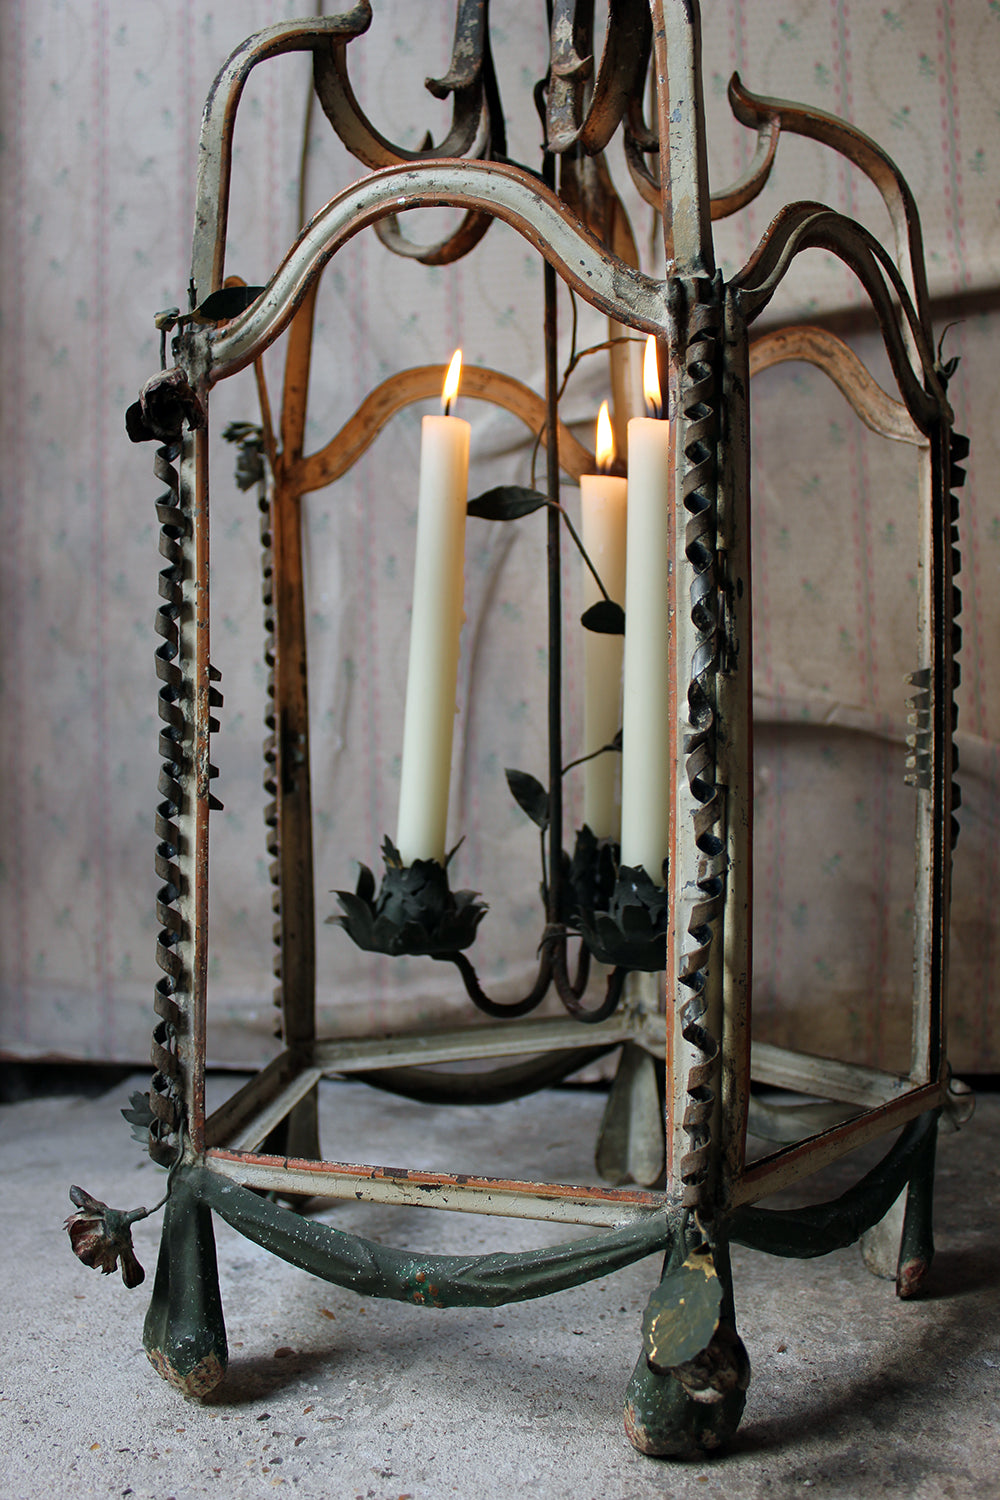 A Glorious Early 19thC French Tôle Peinte Hexagonal Hall Lantern c.1810